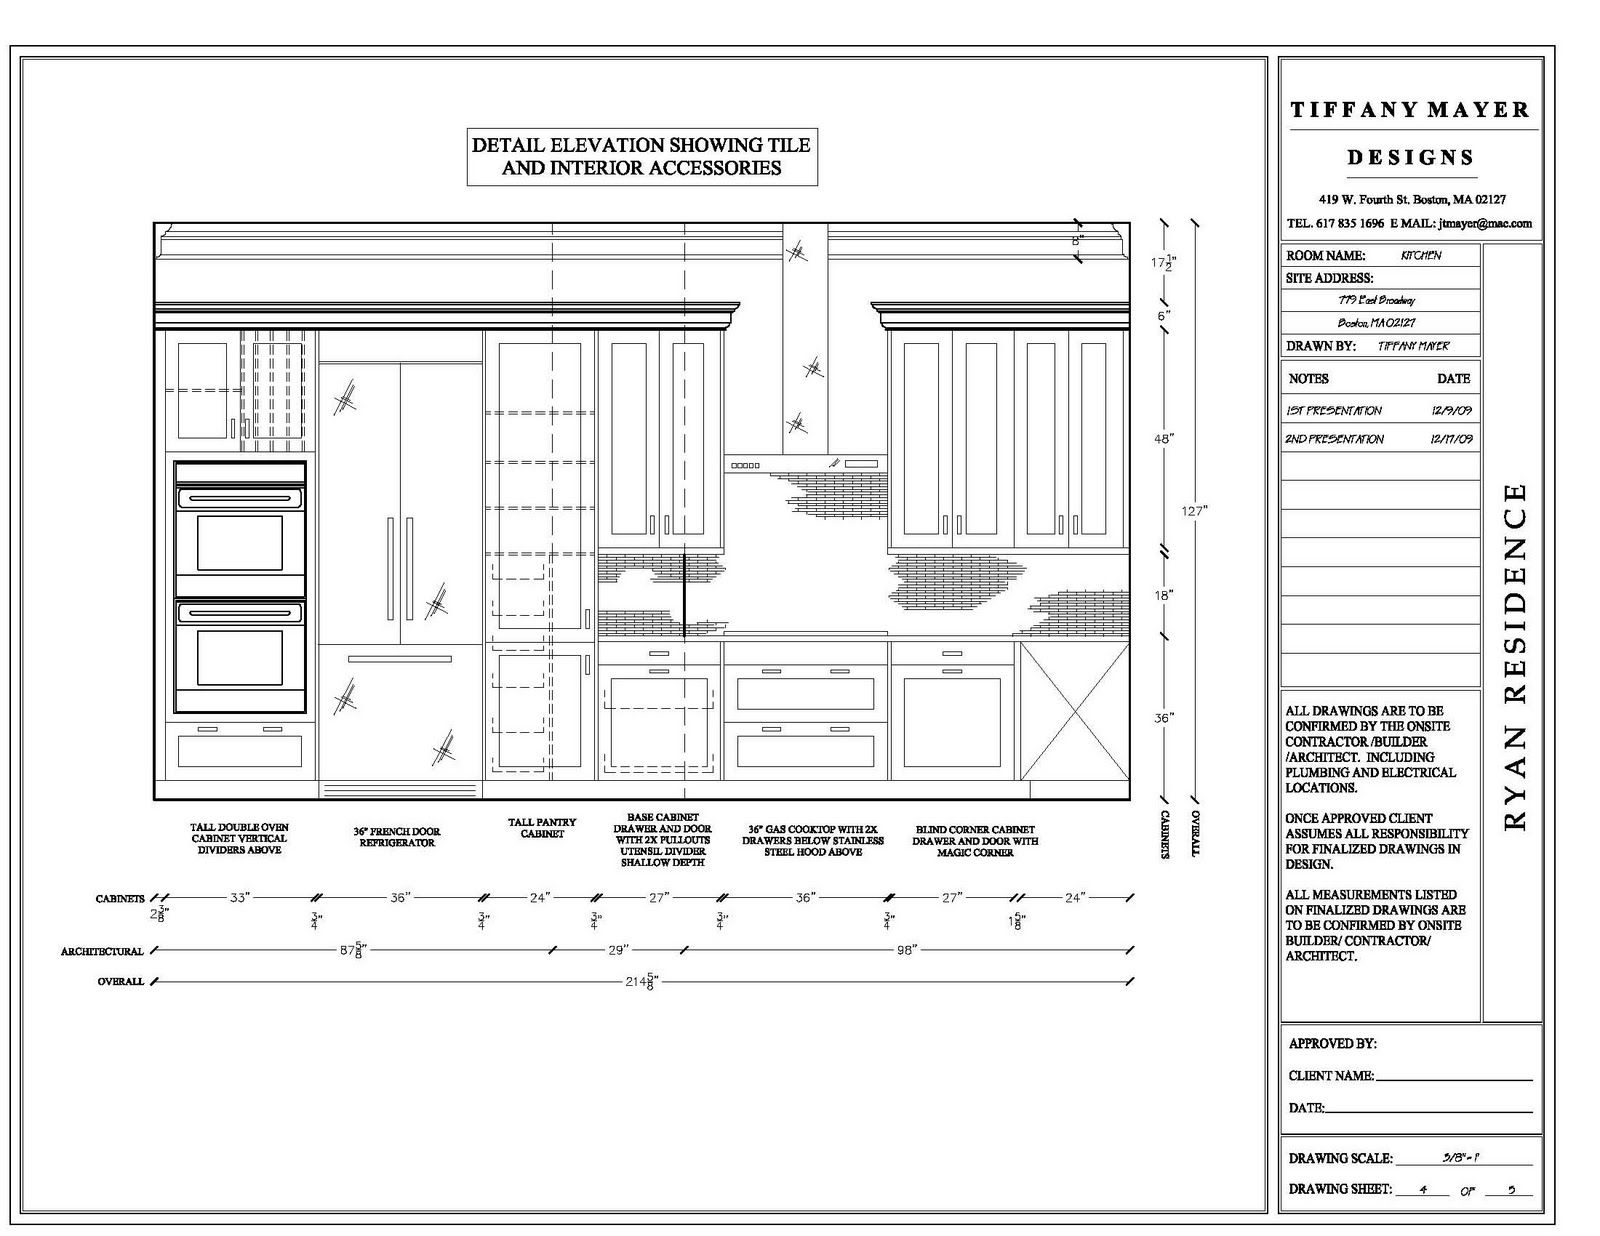 Simple Kitchen Elevation elevation drawings cabinet detail drawing size interior design